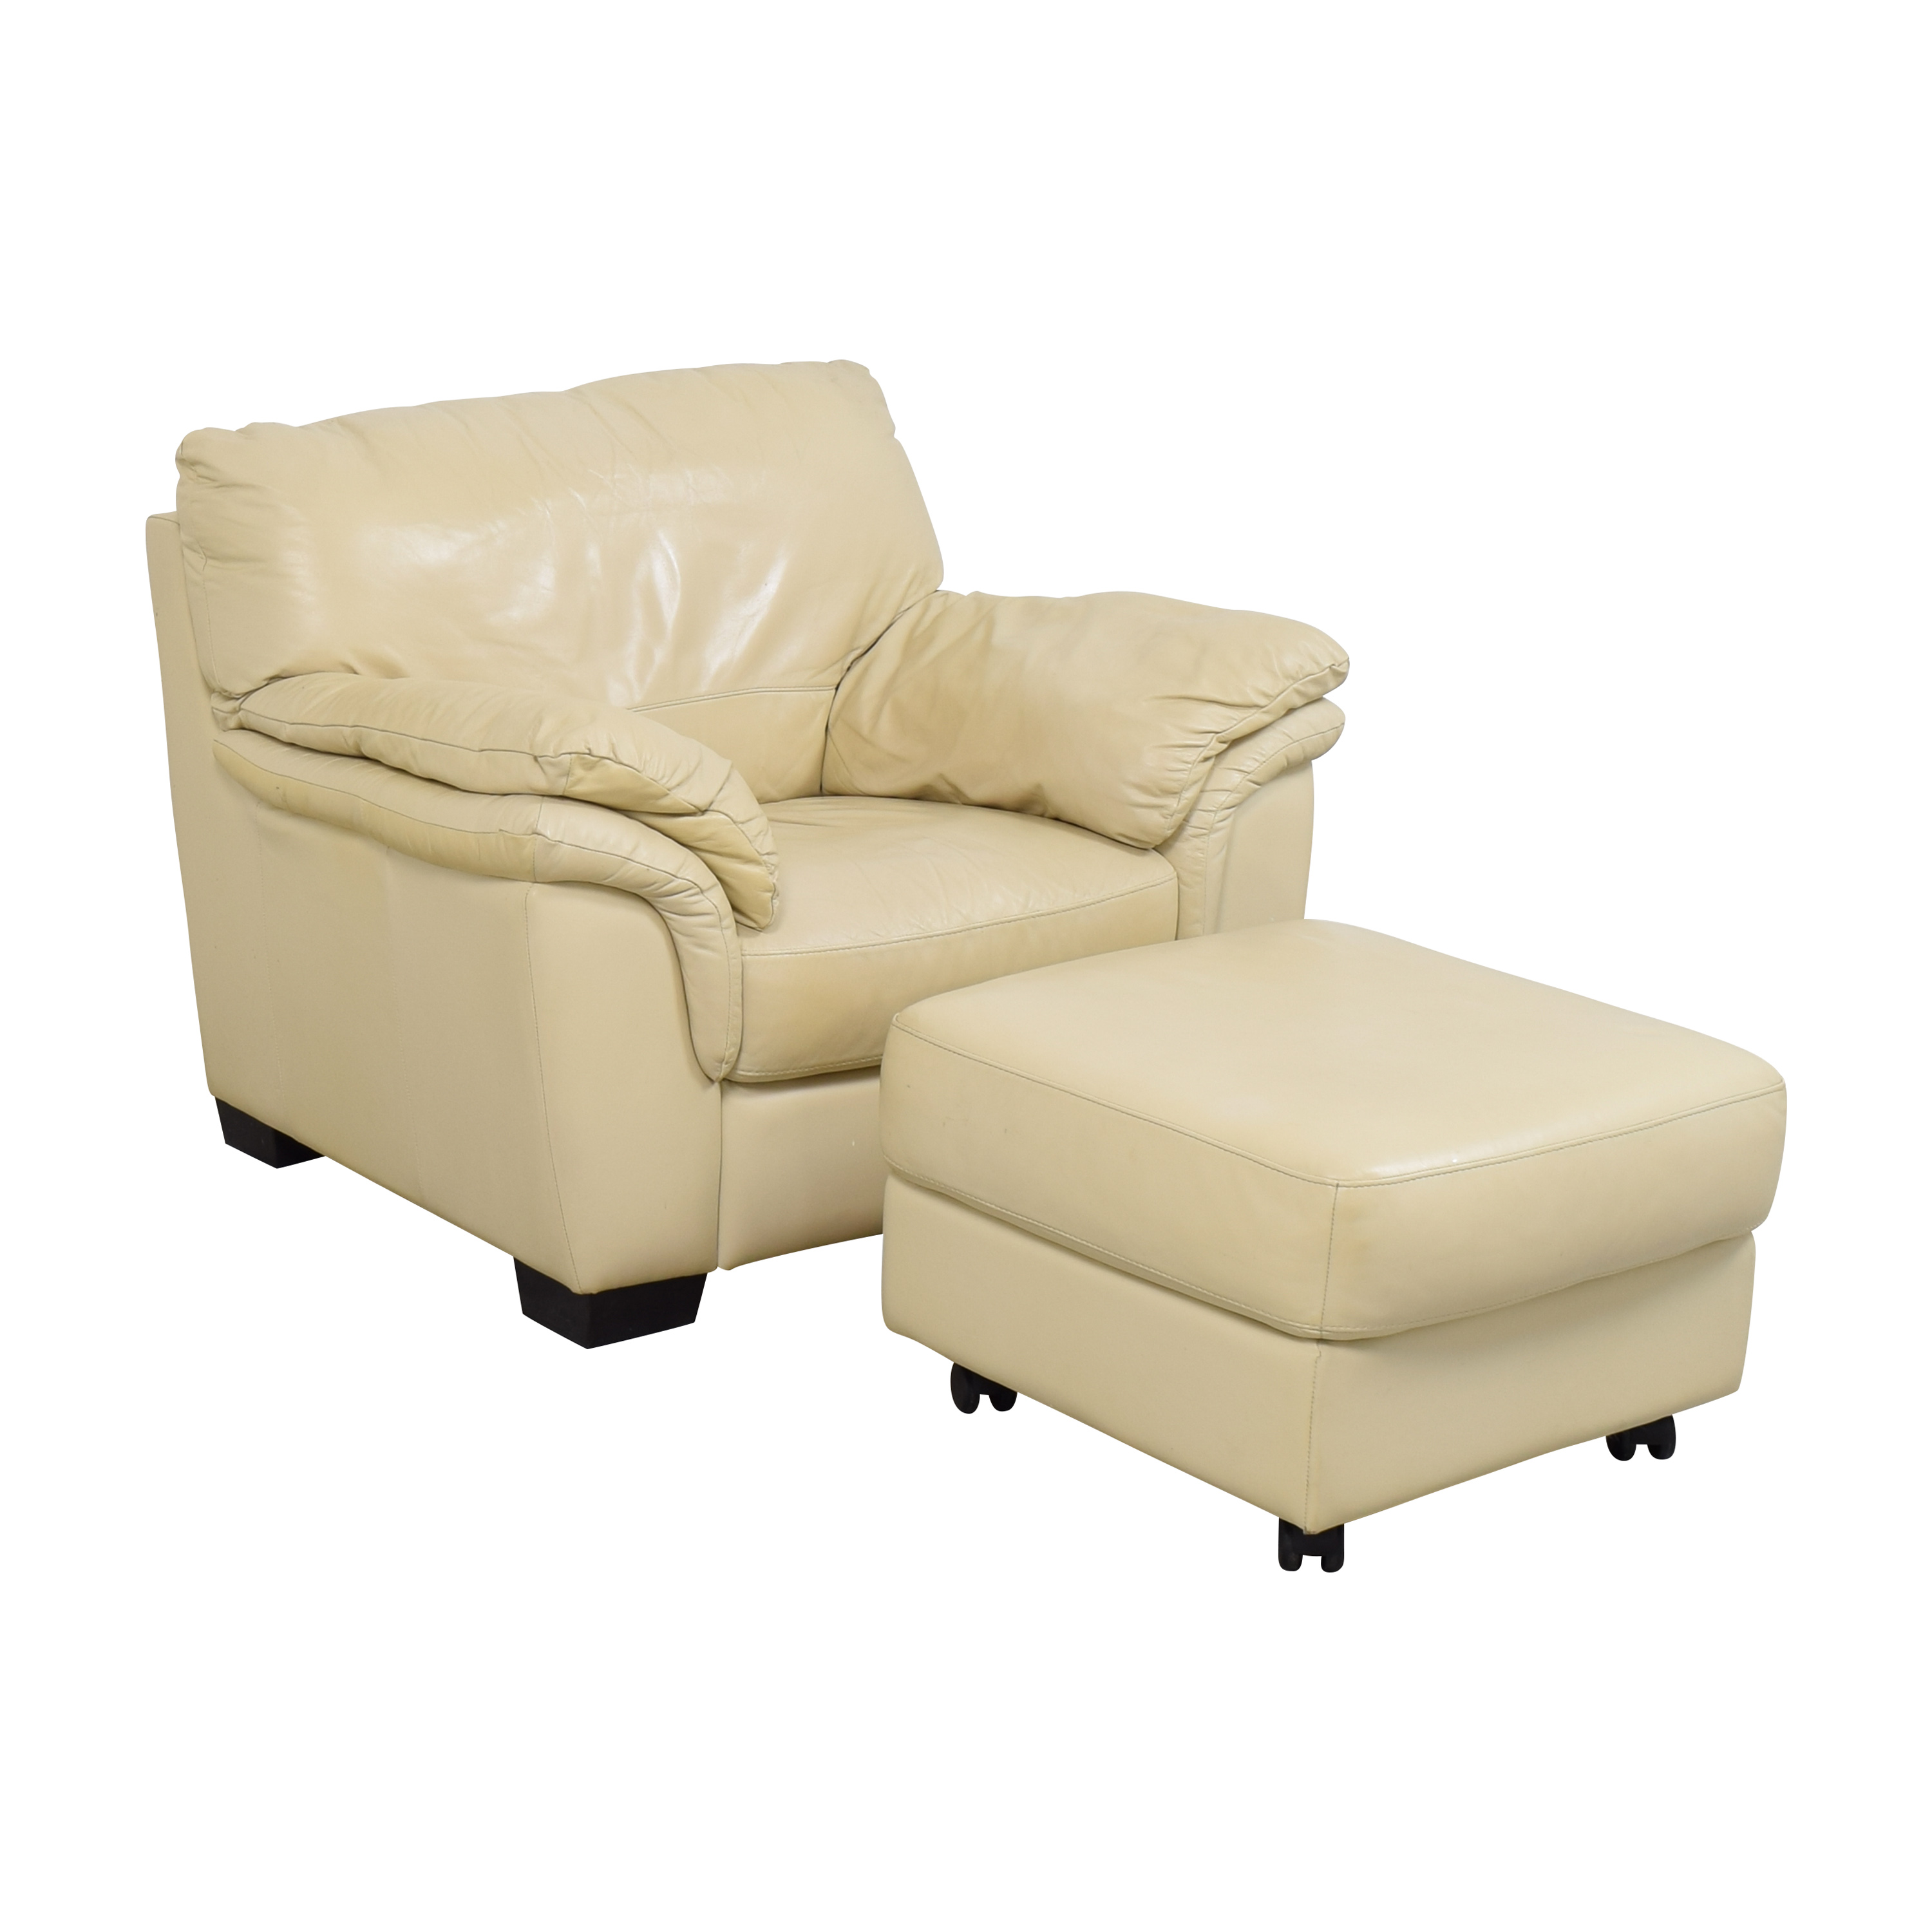 shop Raymour & Flanigan Raymour & Flanigan Chair with Ottoman by Italsofa online